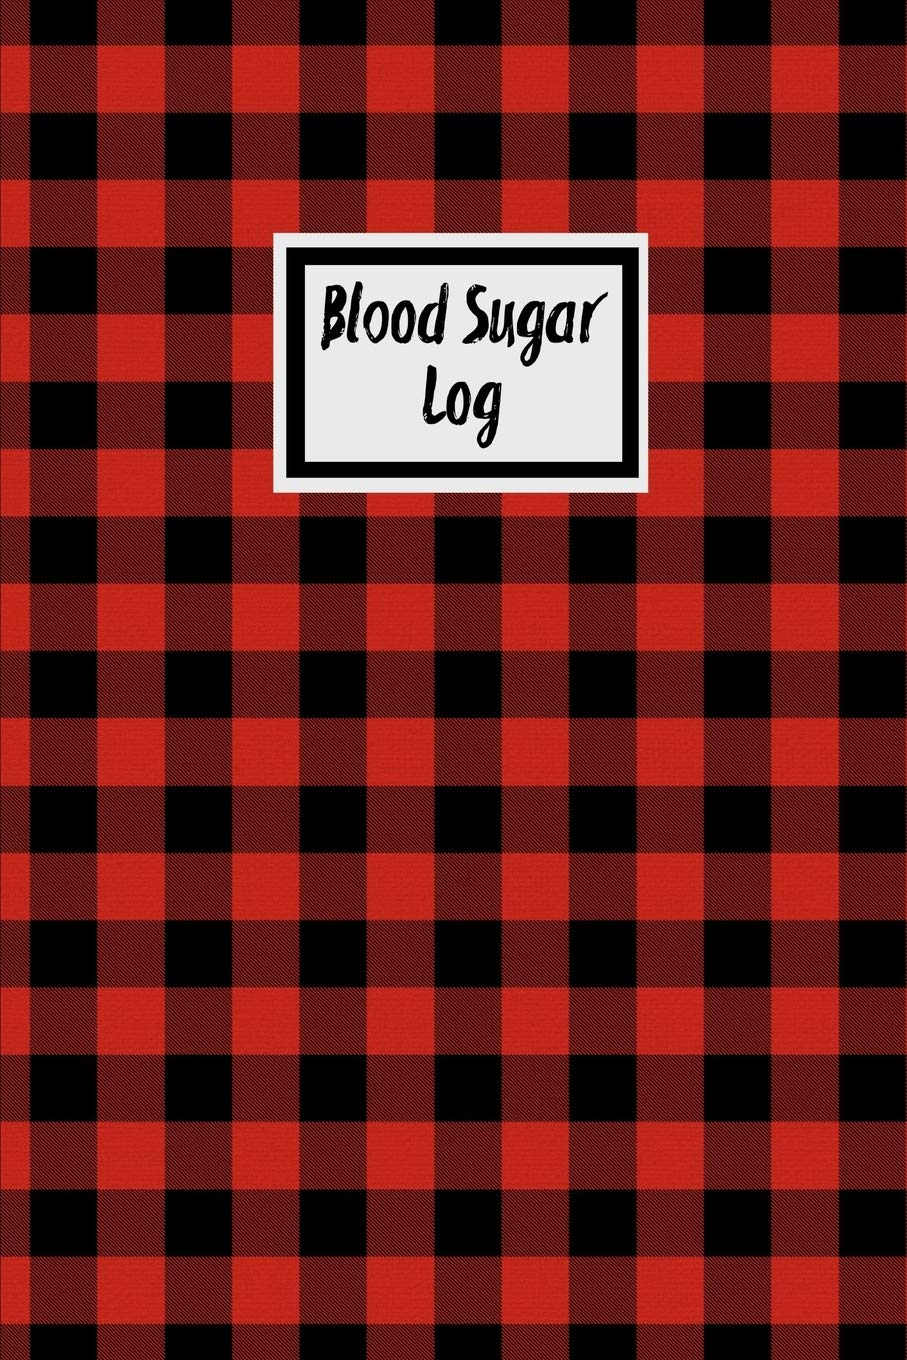 Blood Sugar Log Blood Sugar Tracker Daily Record Chart Your Glucose Readings Book Publishing Diabetes Diary 9781695685383 Amazon Com Books